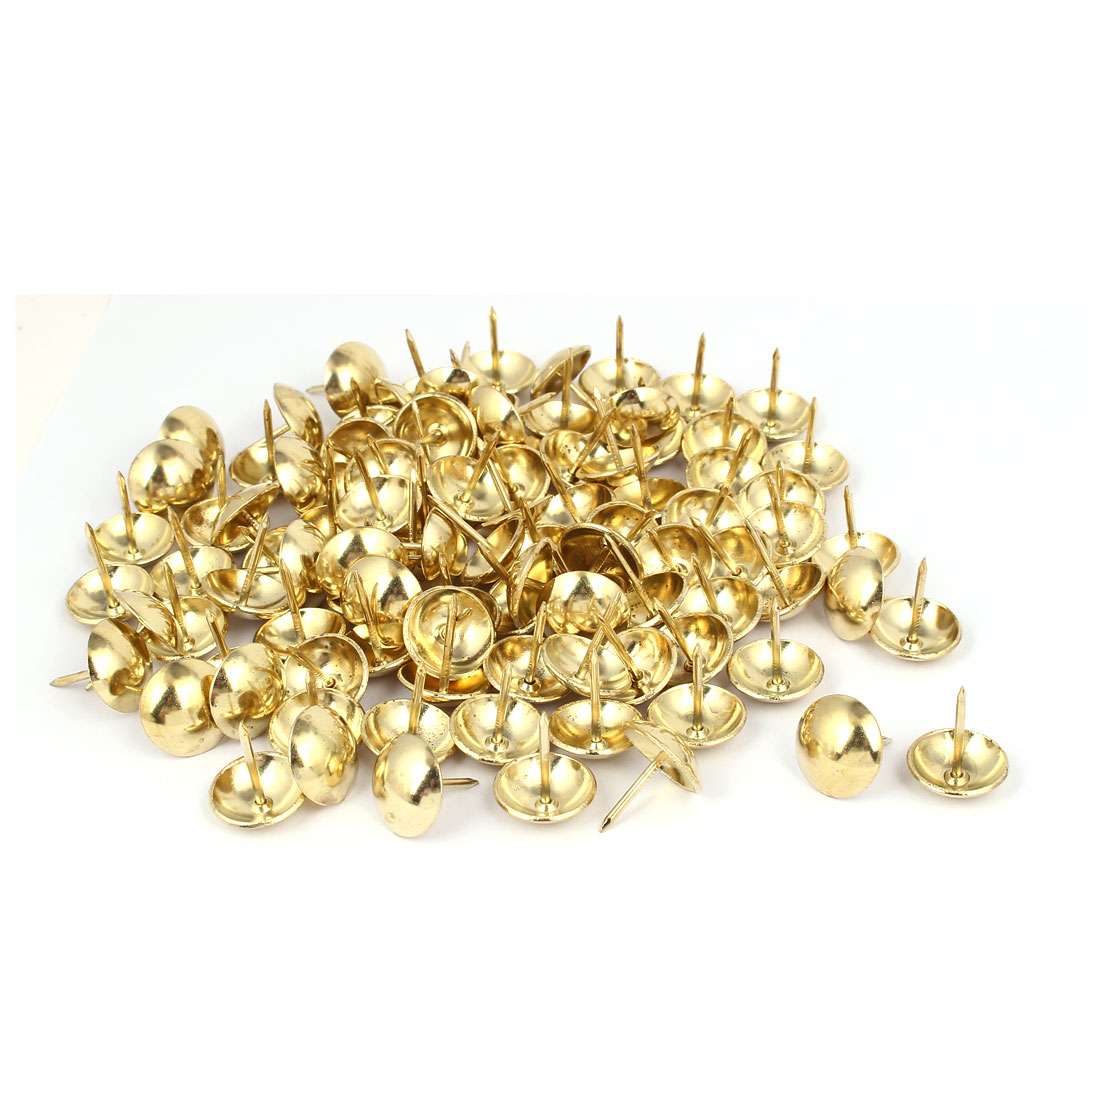 Metal Round Head Upholstery Tack Nail Gold Tone 19mm Dia 100pcs for Home Decor